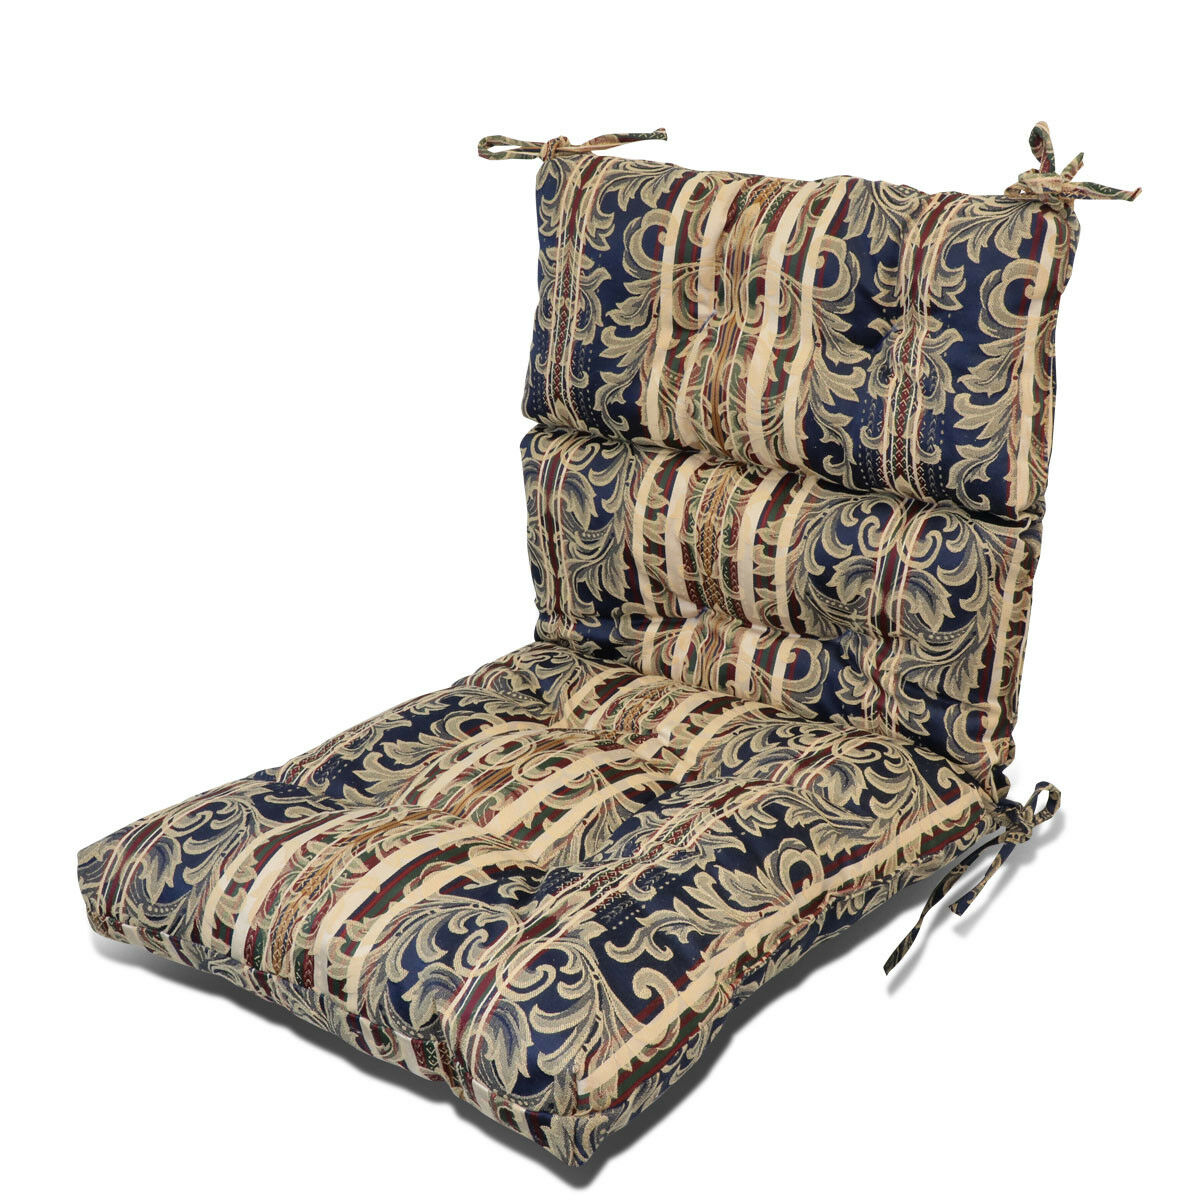 Details About 3 Thickness Patio Garden Dining Seat Back Chair Cushion Seat Pad Pillow Floral